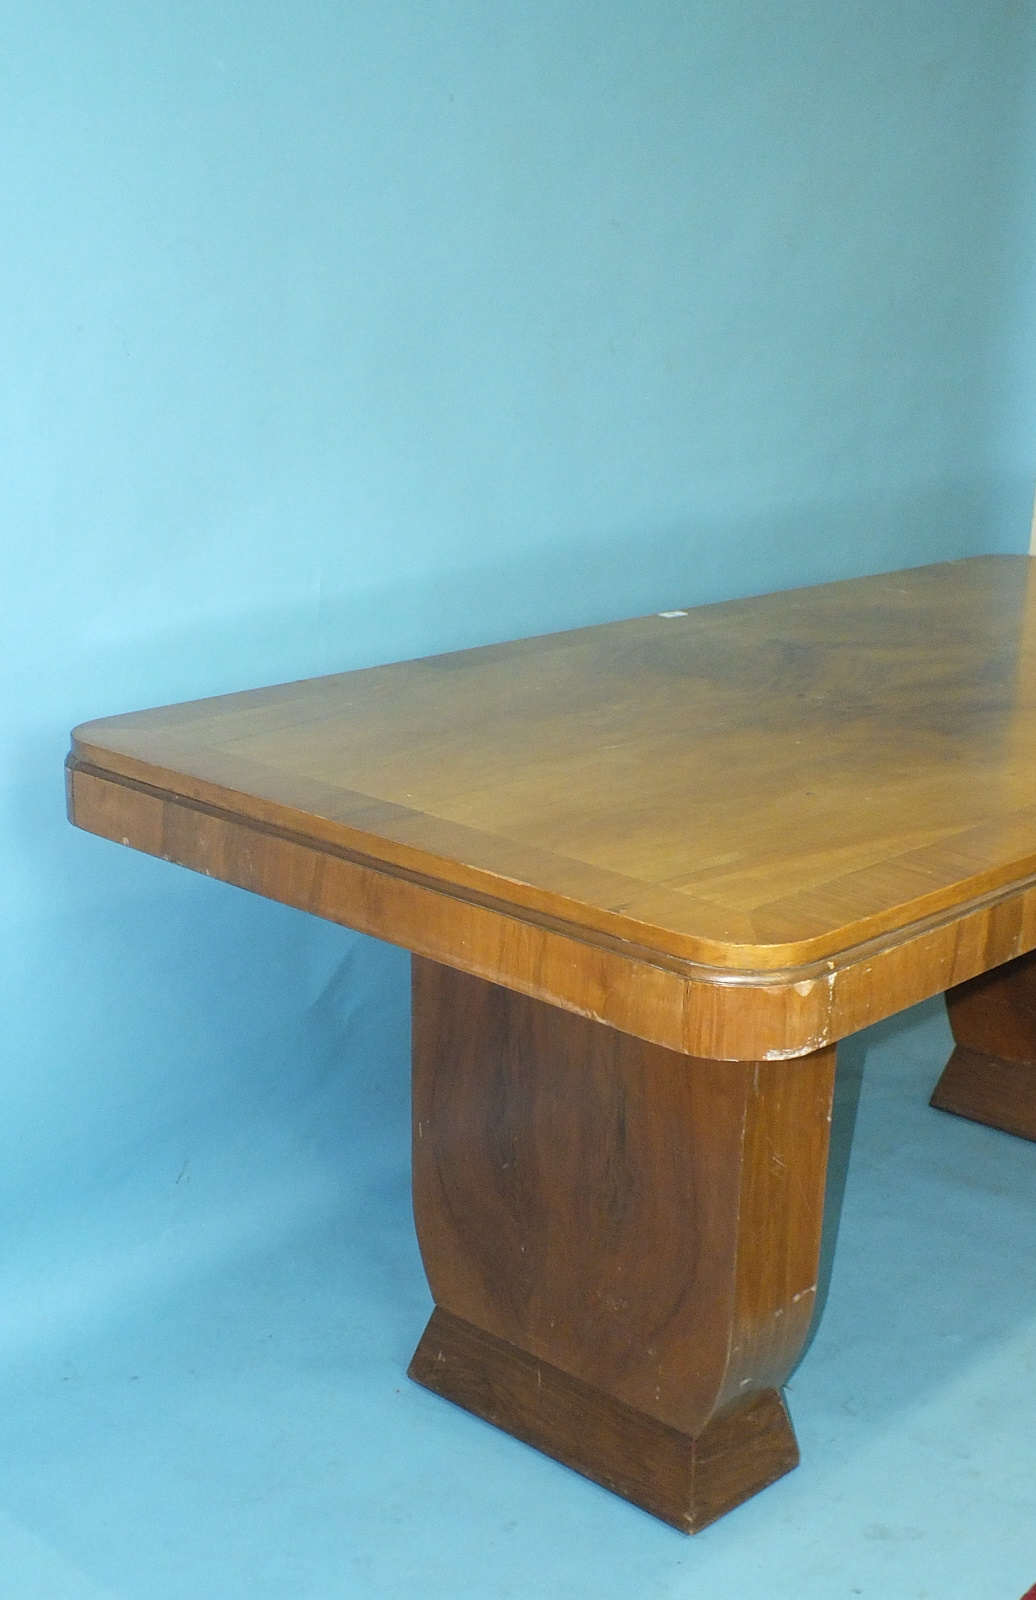 Lot 25 - A 1930's walnut-veneered dining table, 185 x 90cm and four chairs of rounded tub shape.